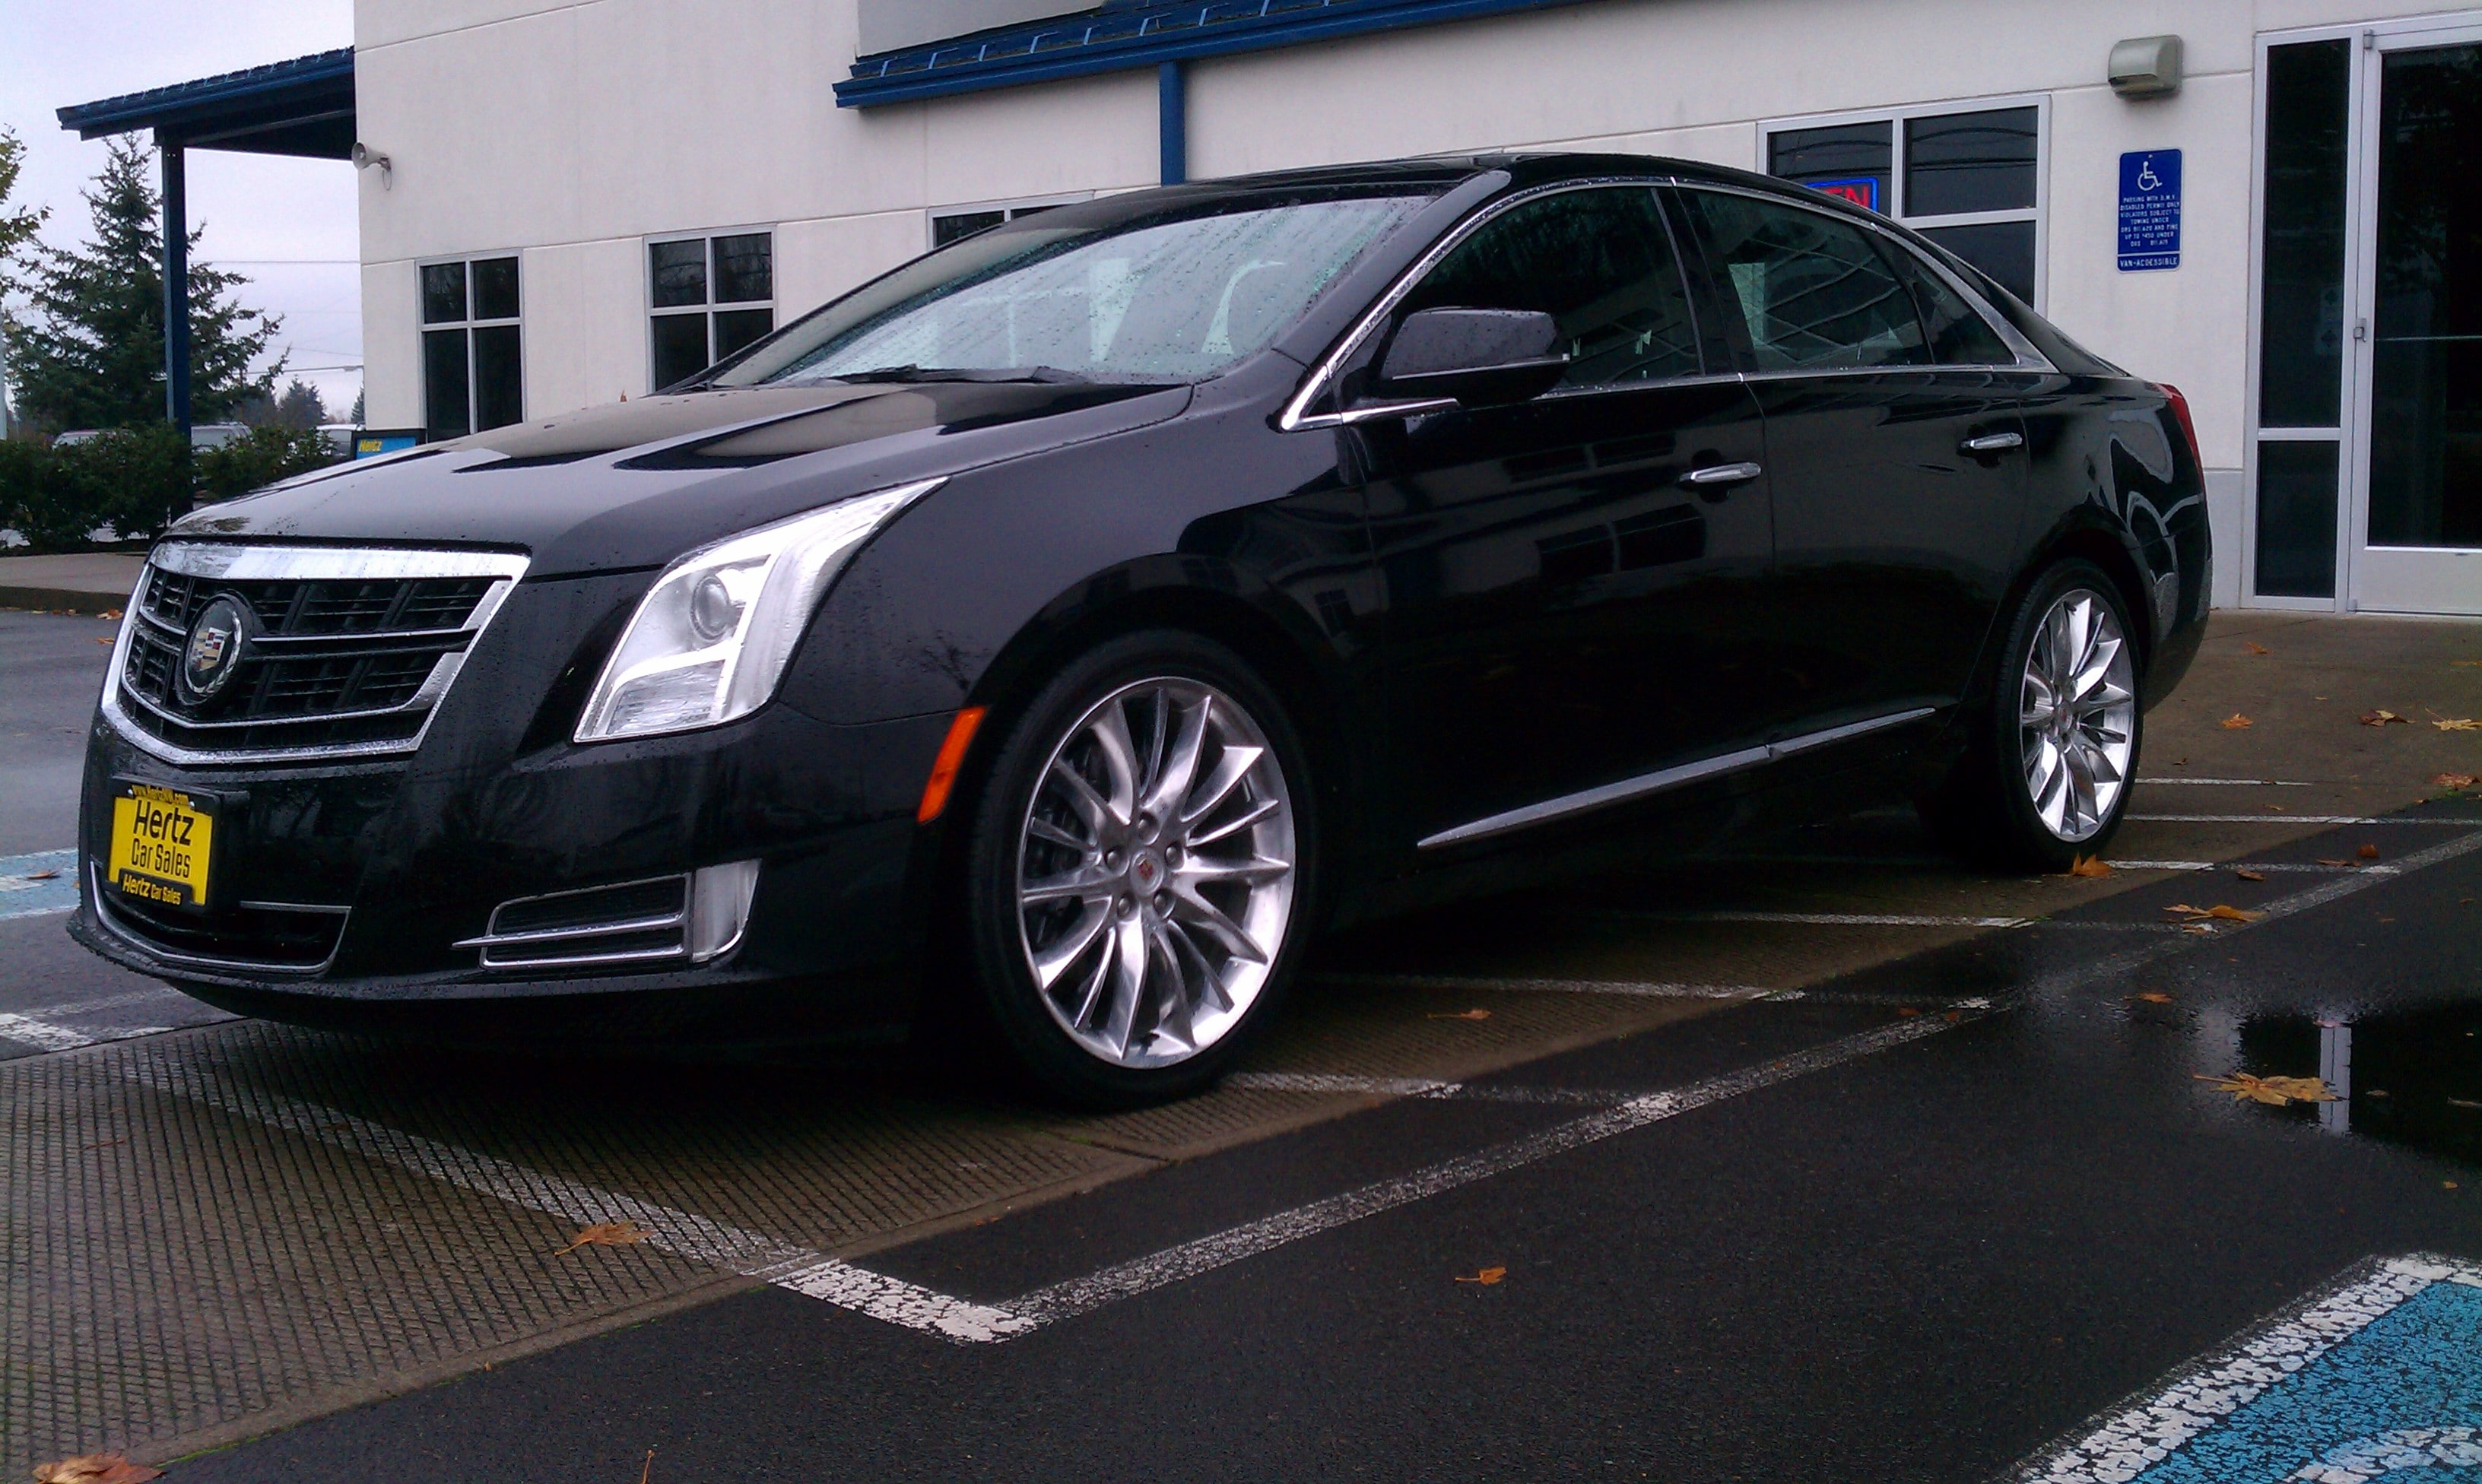 2014 CADILLAC XTS Vsport Platinum Sedan